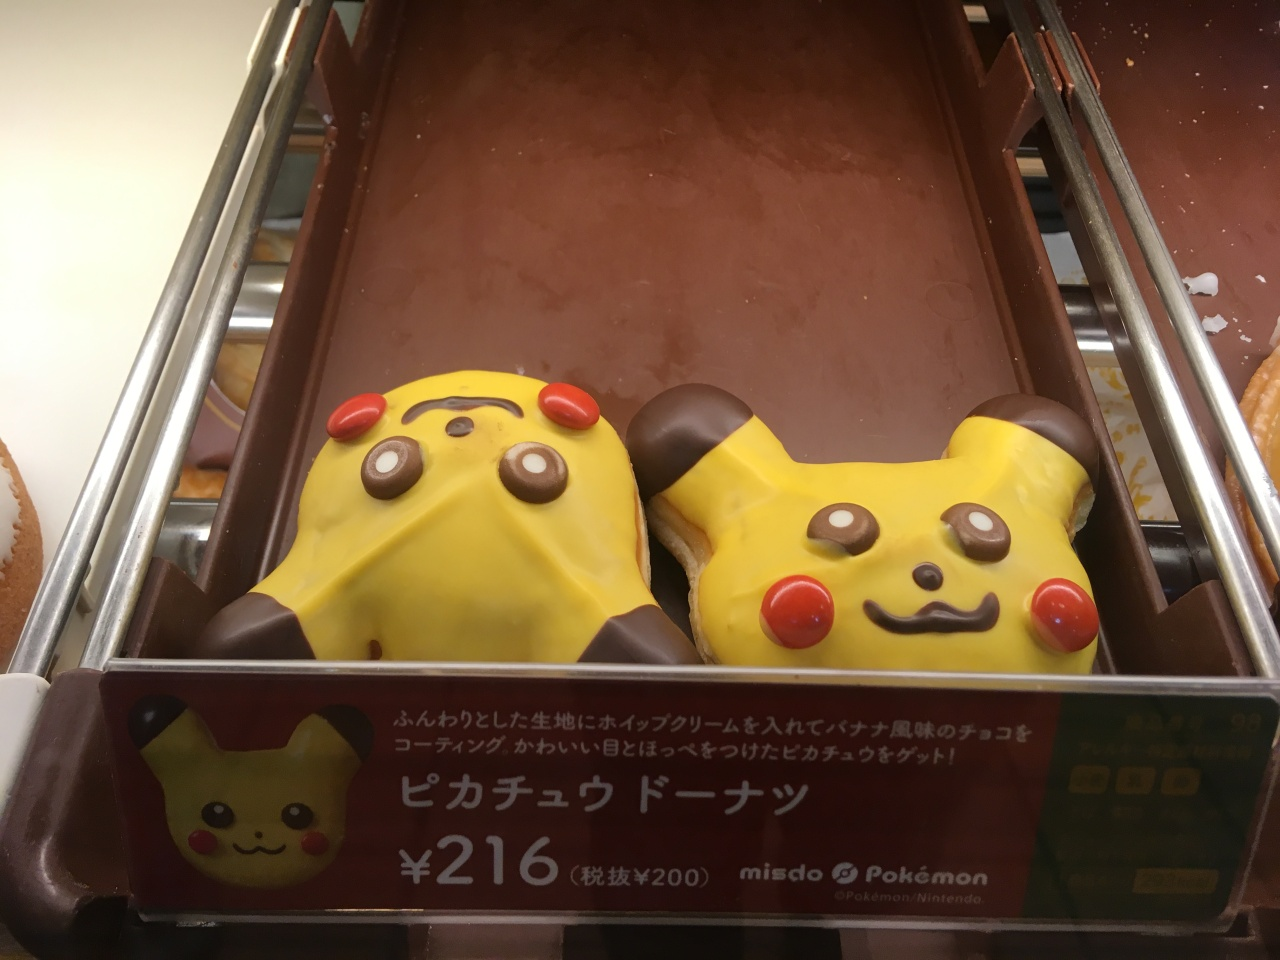 Pokémon and Holiday Donuts in Japan